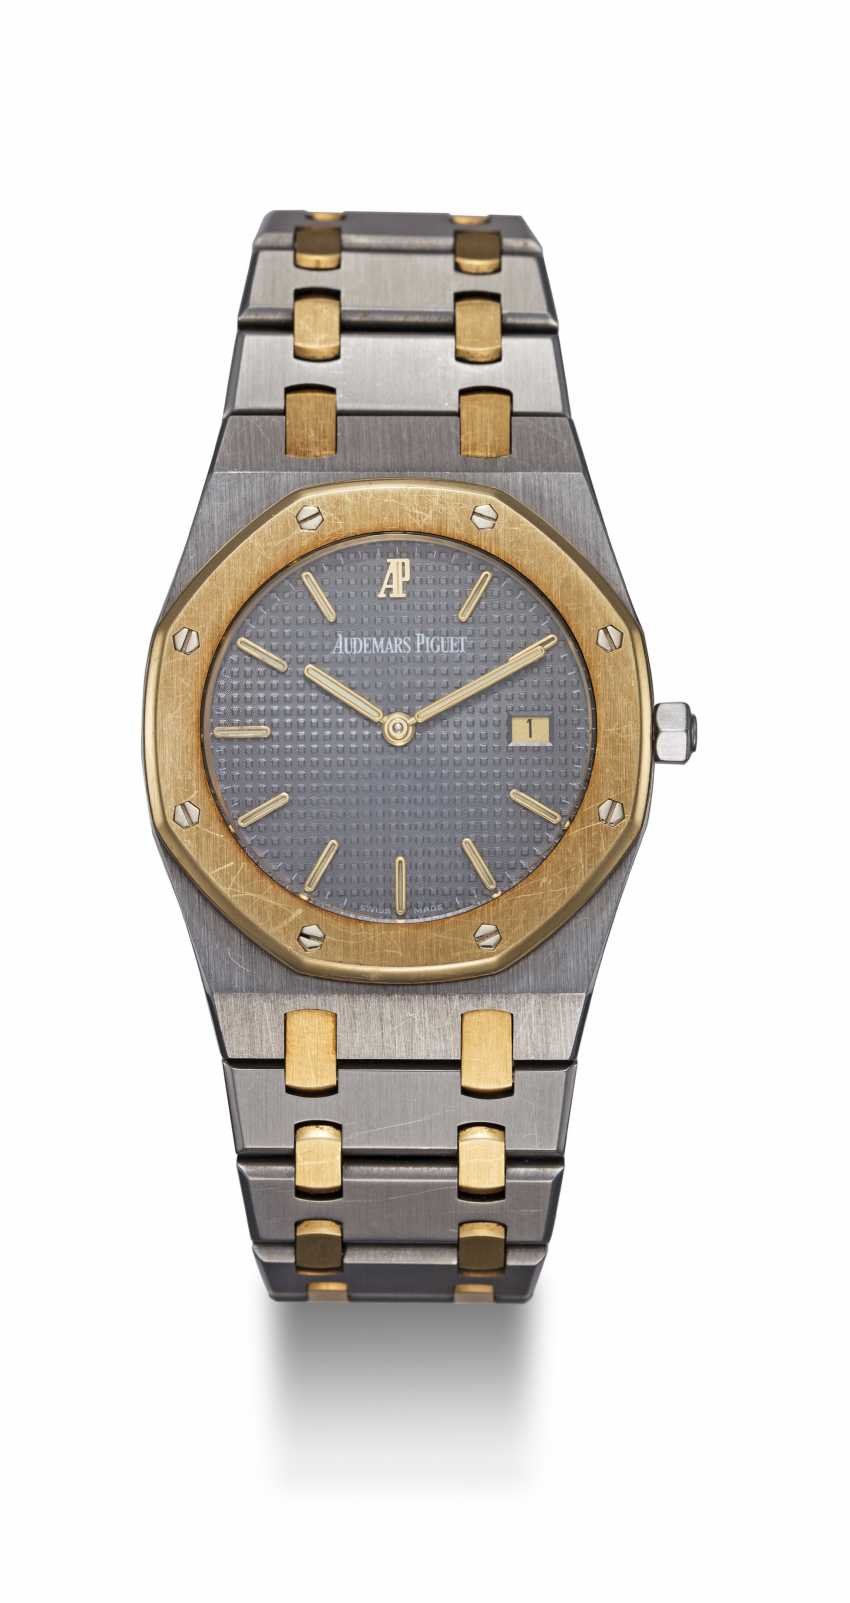 AUDEMARS PIGUET, A LADIES TWO-TONE ROYAL OAK QUARTZ WRISTWATCH - photo 3